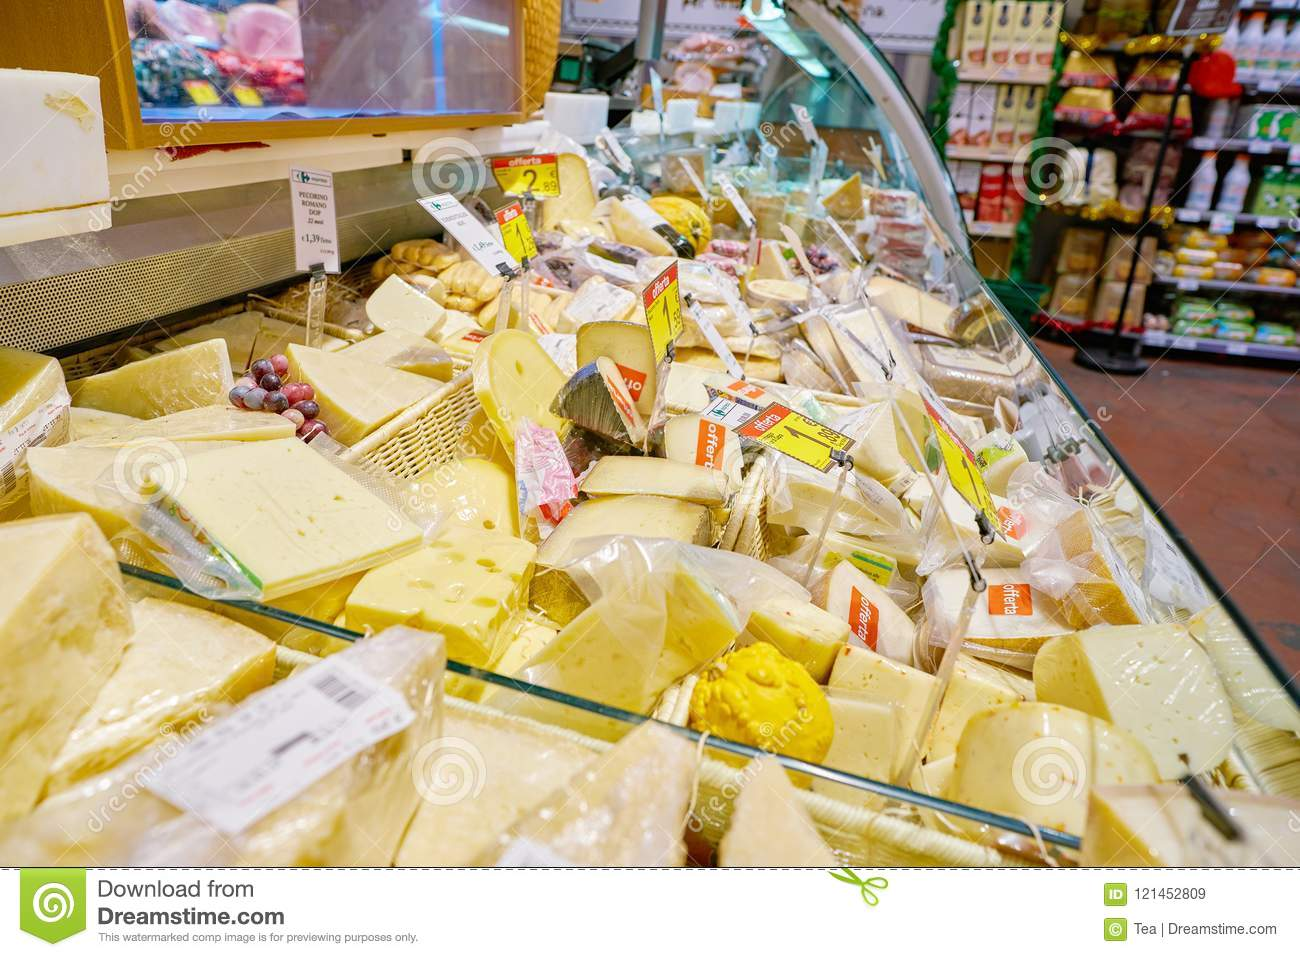 Carrefour Cuisine Carrefour Express Editorial Stock Image Image Of Indoor 121452809